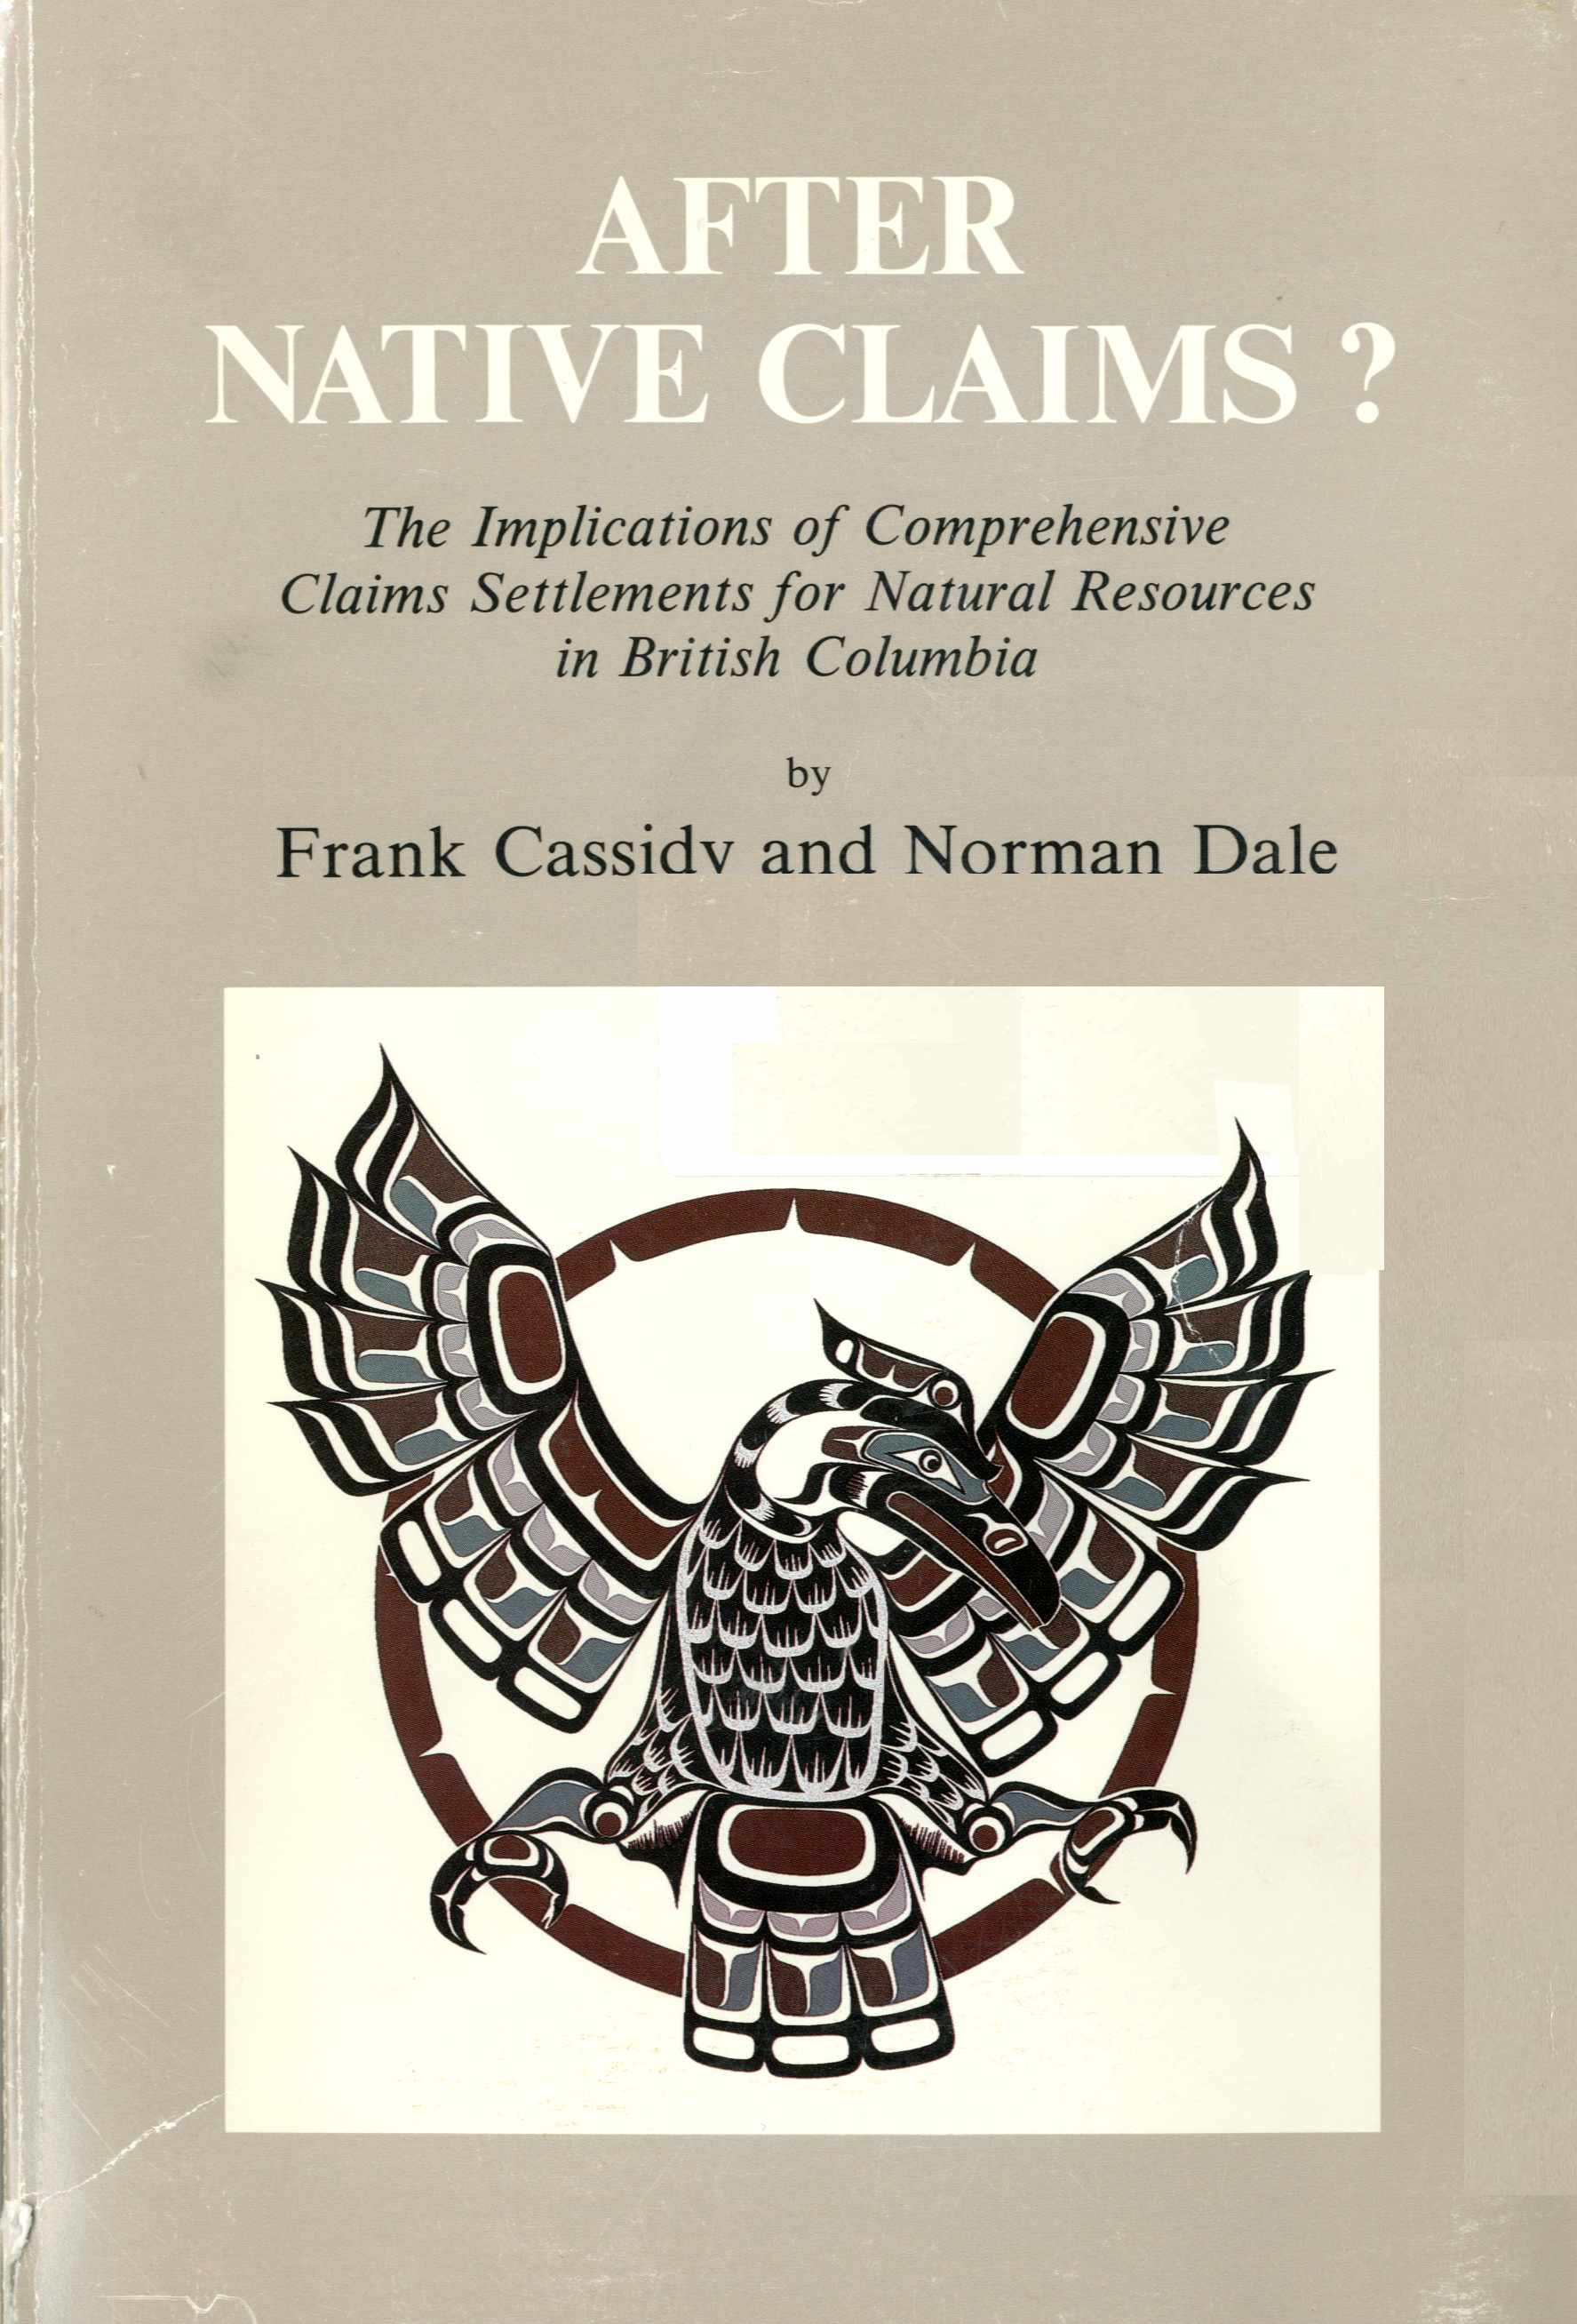 After Native Claims? The Implications of Comprehensive Claims Settlements for Natural Resources in British Columbia Image